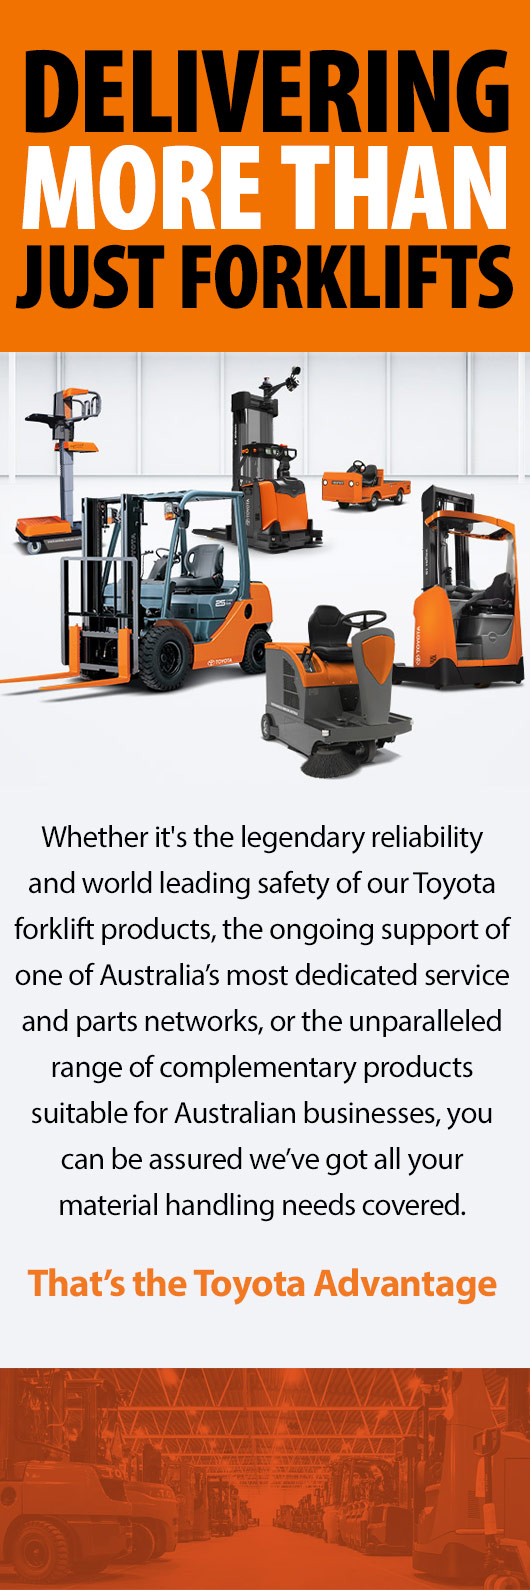 Toyota Material Handling Forklifts Forklift Repairs East Albury